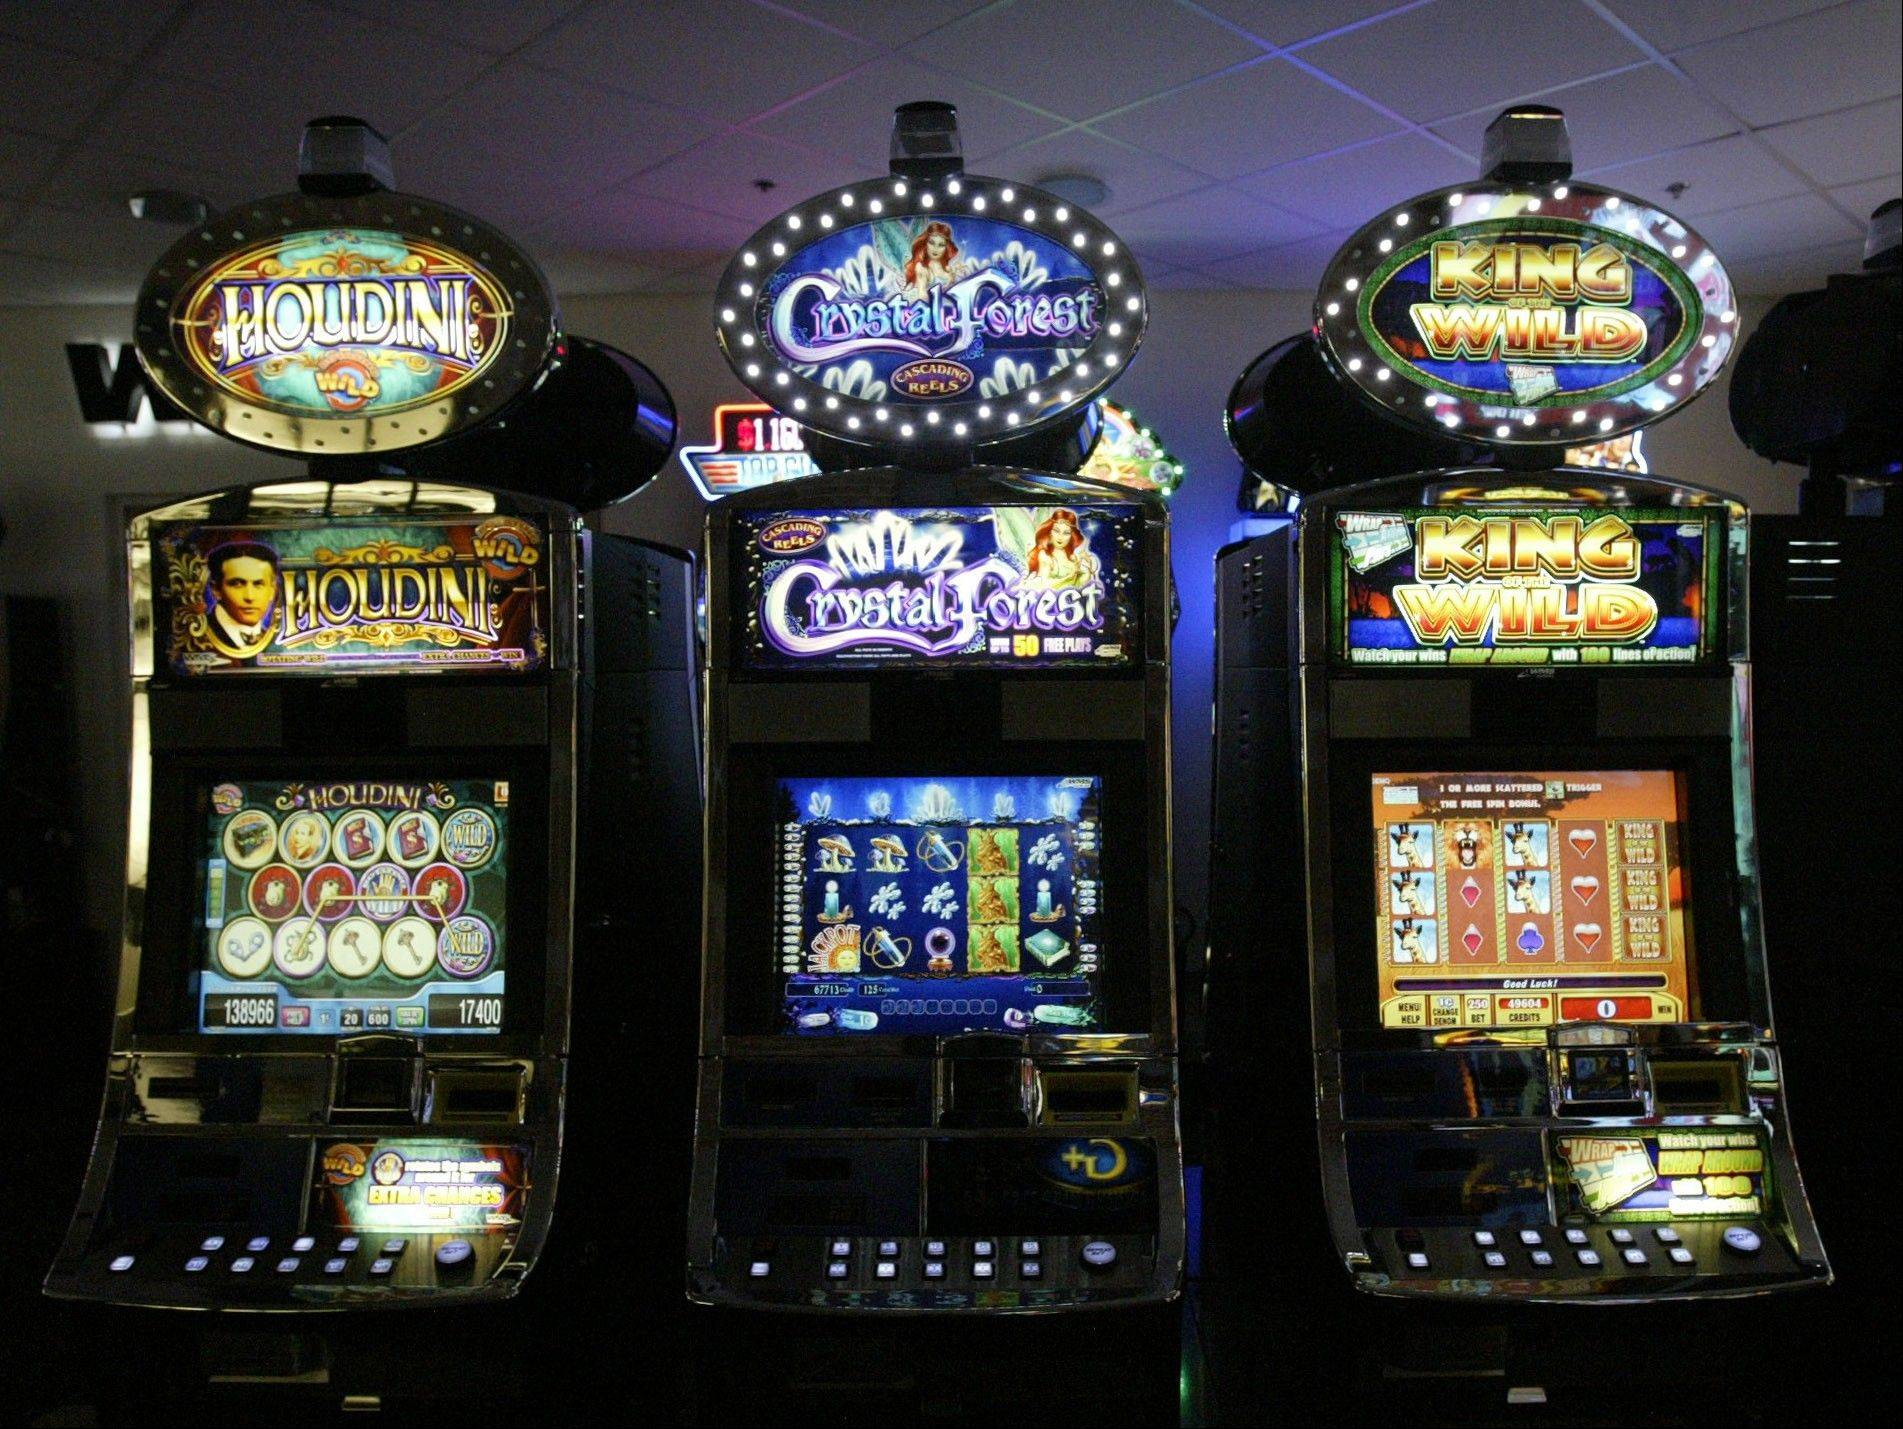 Gov. Pat Quinn said Tuesday he sees �serious shortcomings� in a bill to expand gambling. He could use his veto power to suggest changes that would guard against corruption in the new casinos and slot machines.